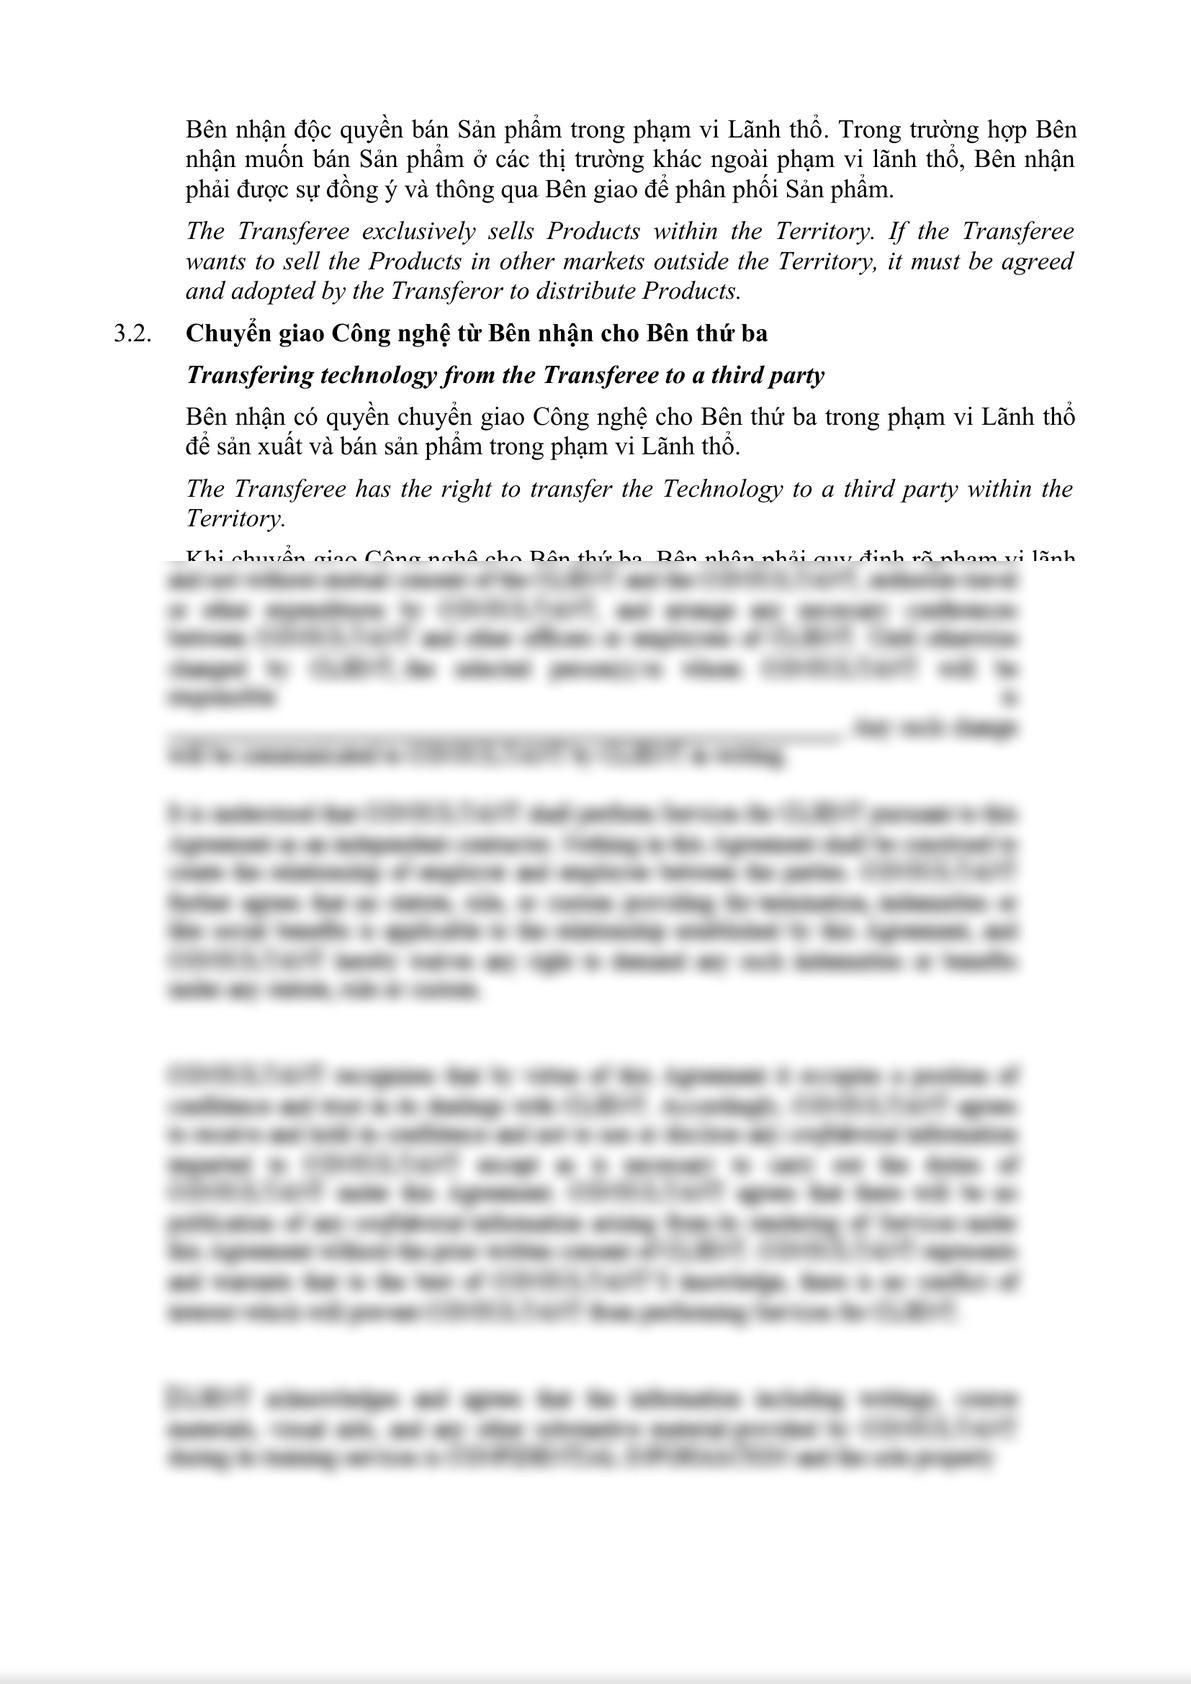 TECHNOLOGY TRANSFER AGREEMENT-3